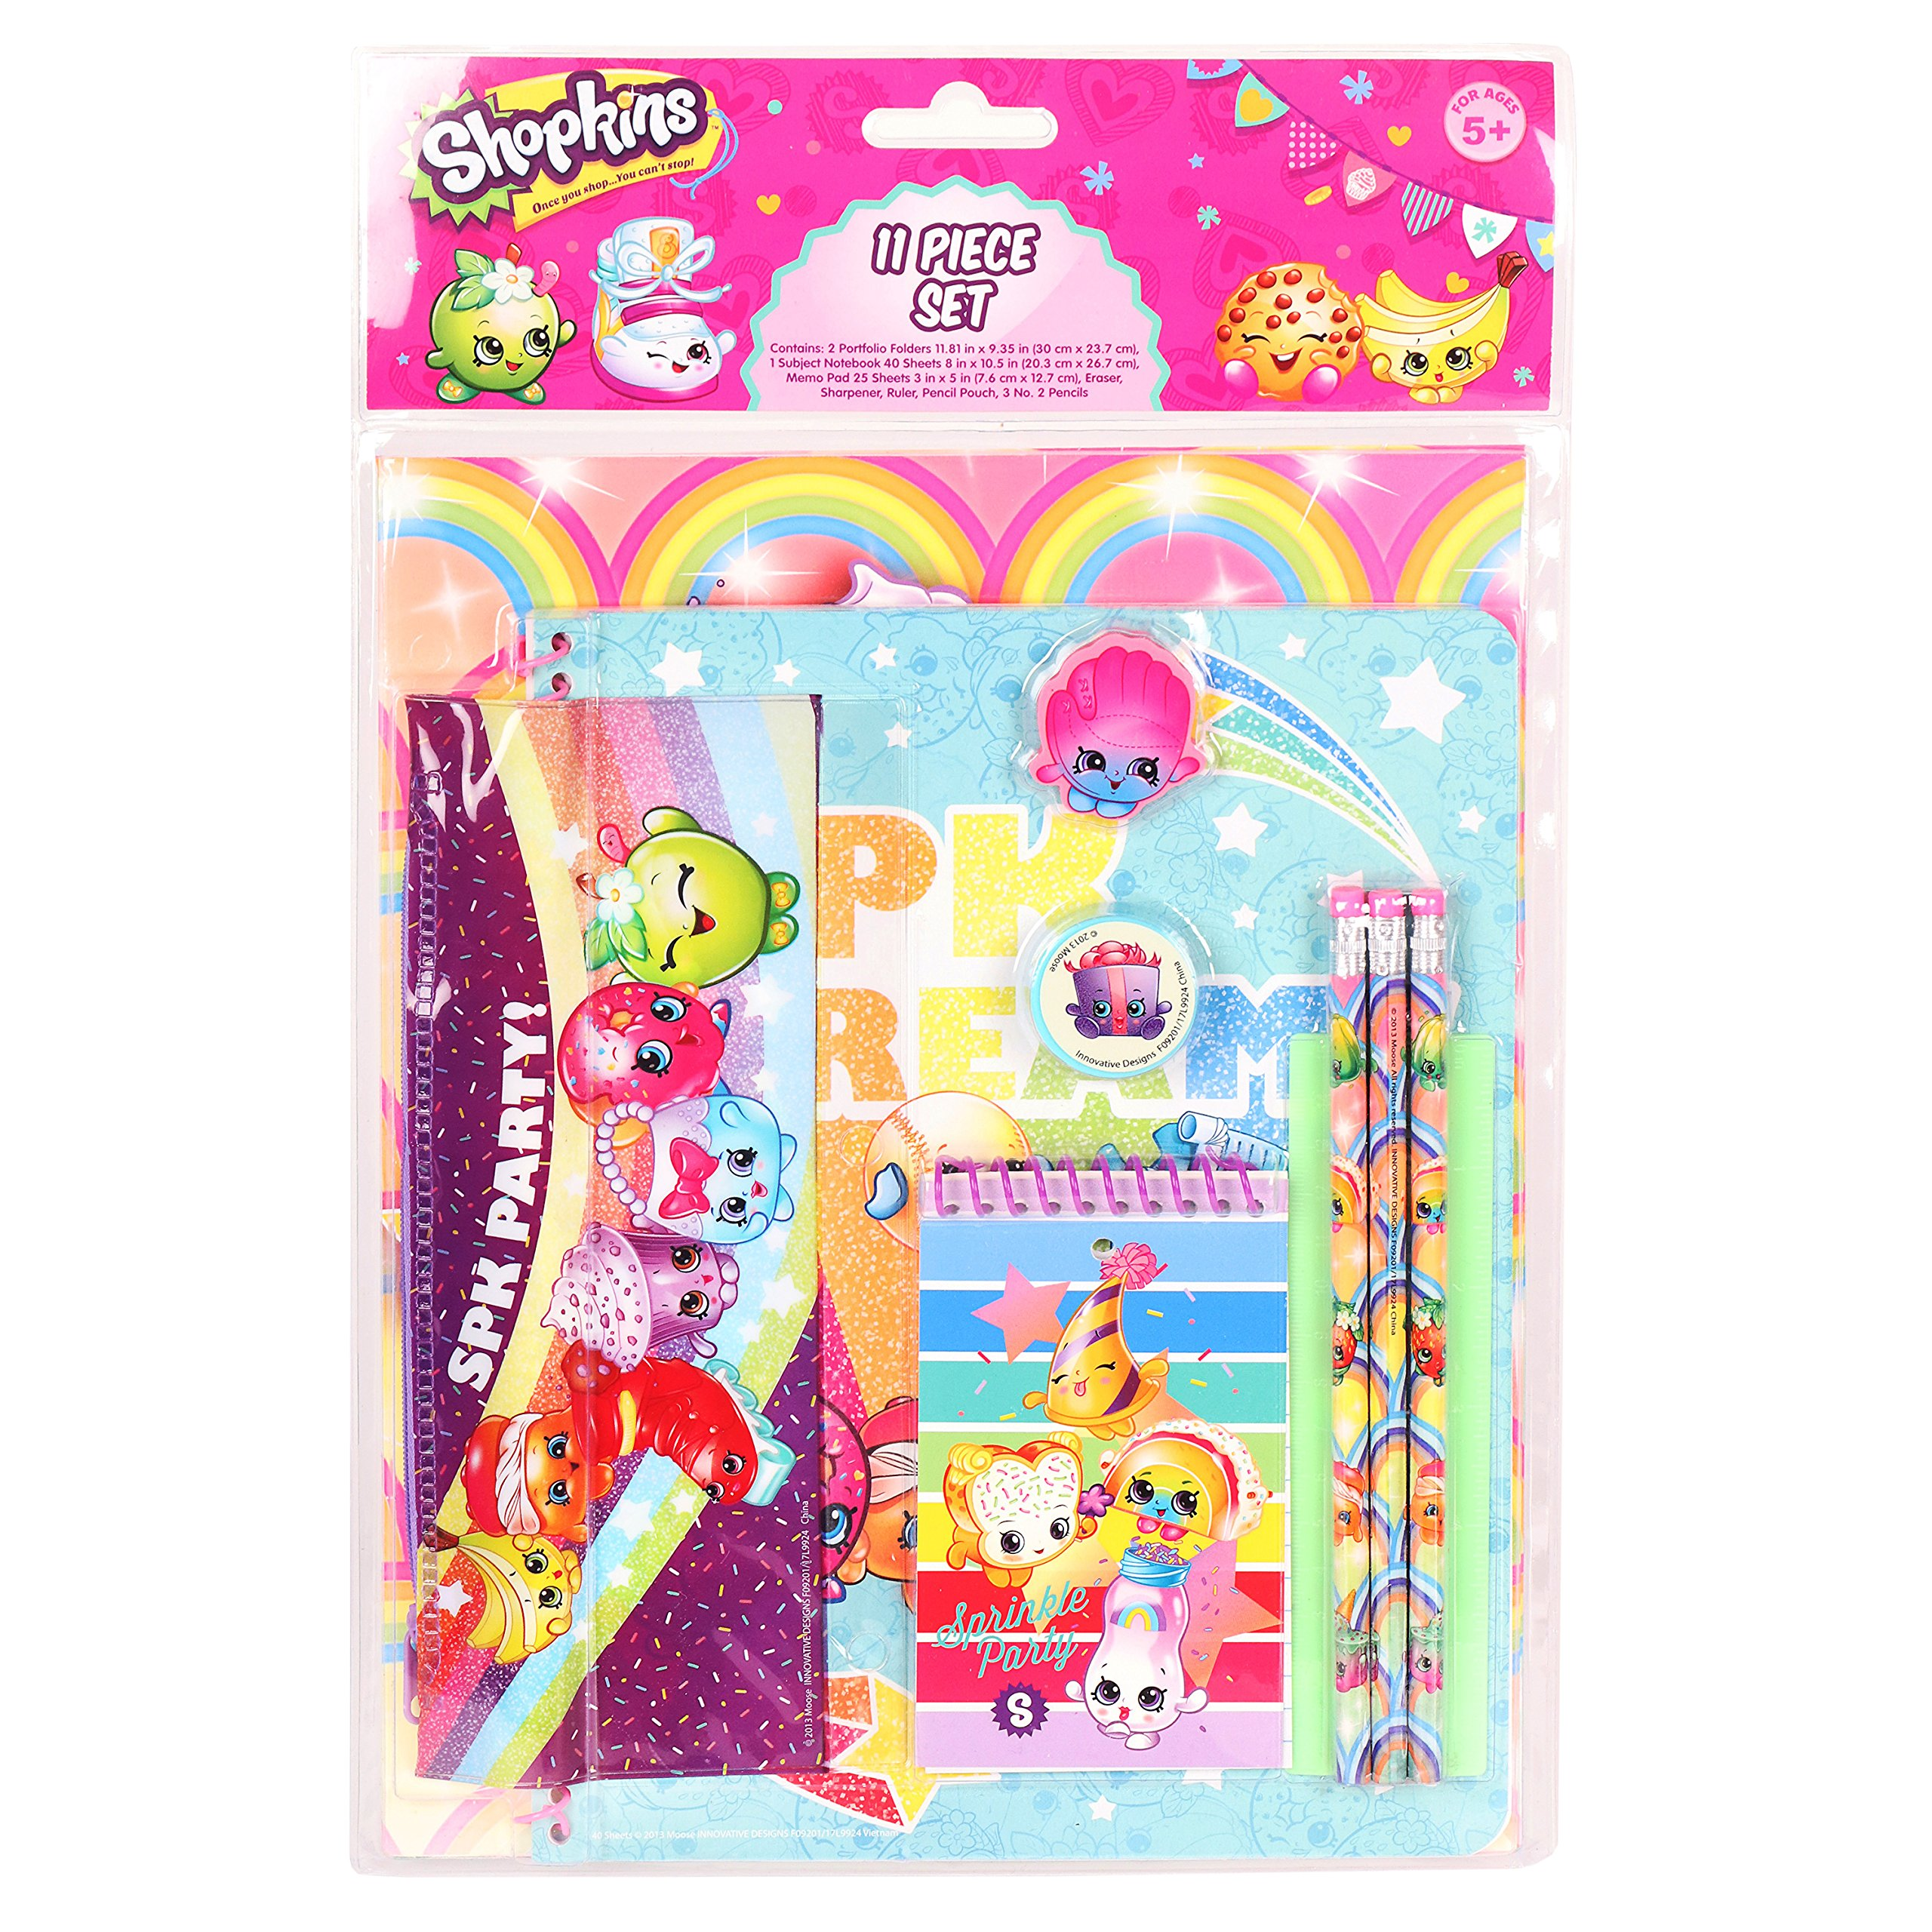 Shopkins Stationery Set School Supplies for Girls / 11 Pieces